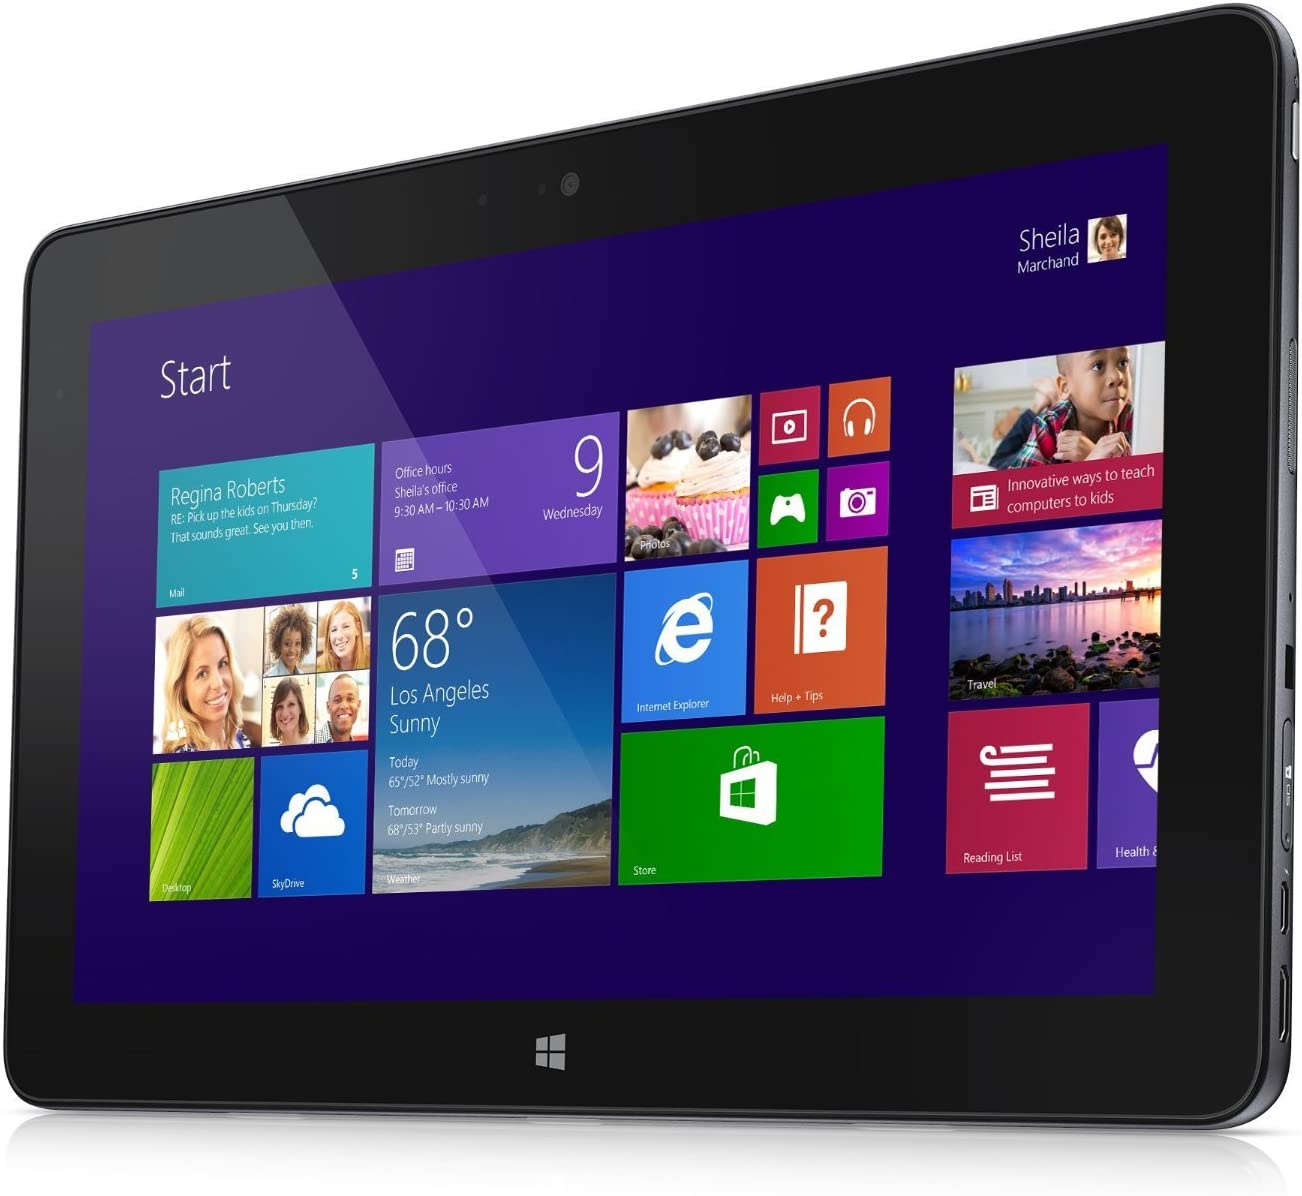 Dell Venue 11 Pro 4th Gen Core i5-4300Y, 8GB RAM, 256GB SSD 11-inch tablet PC, Windows 8.1 Professional